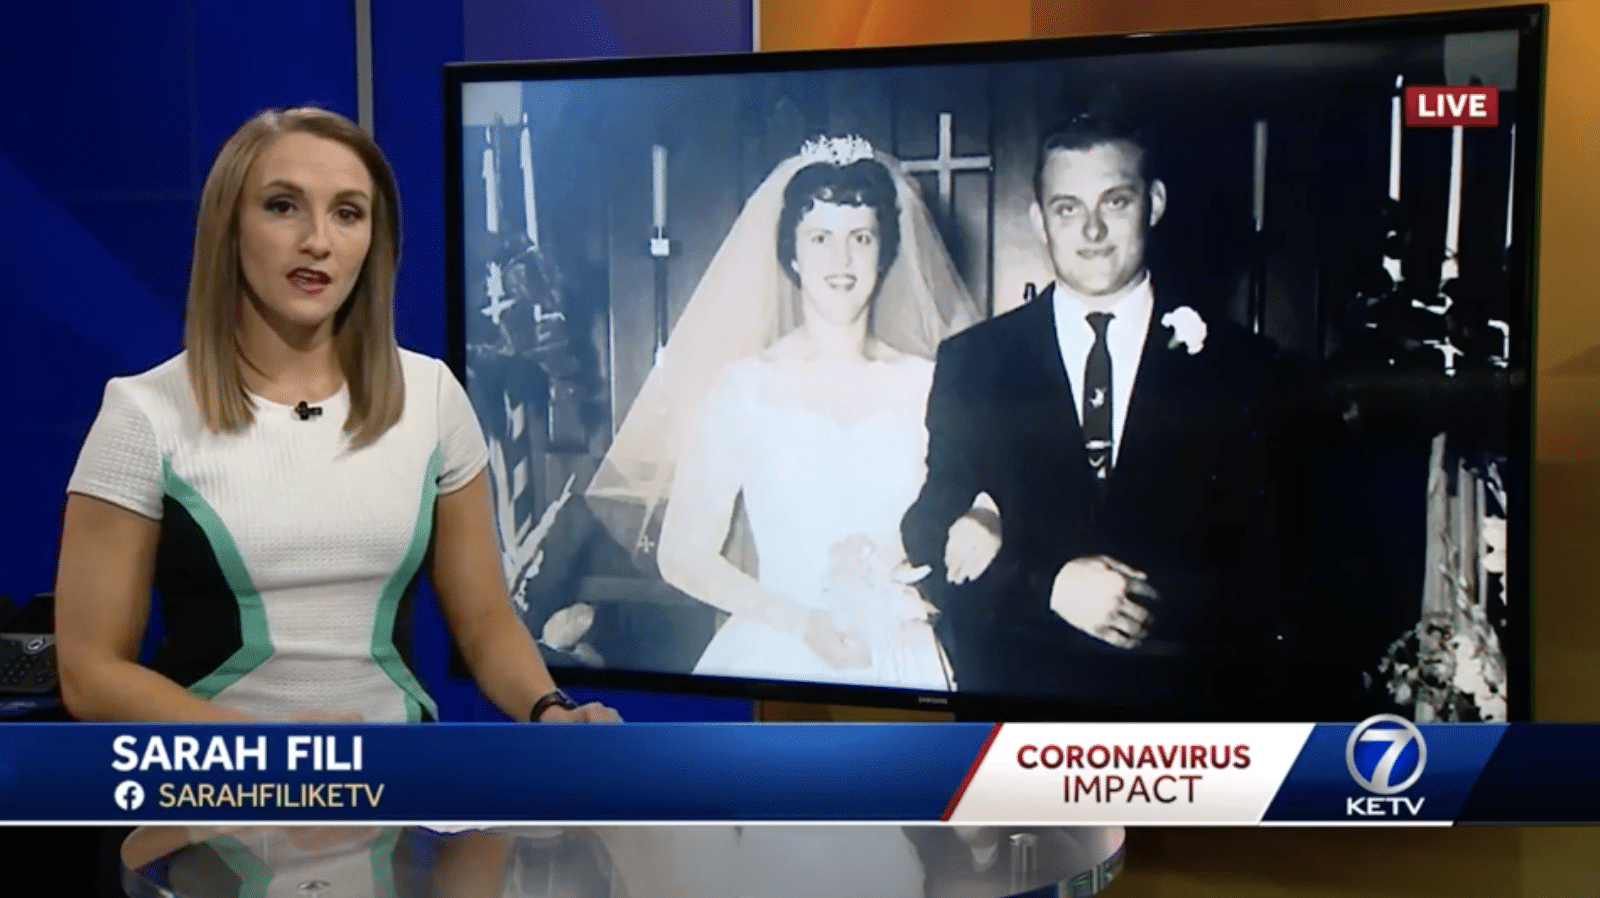 'I'm sad to see them both gone': Couple married 60 years dies from COVID-19 hours apart